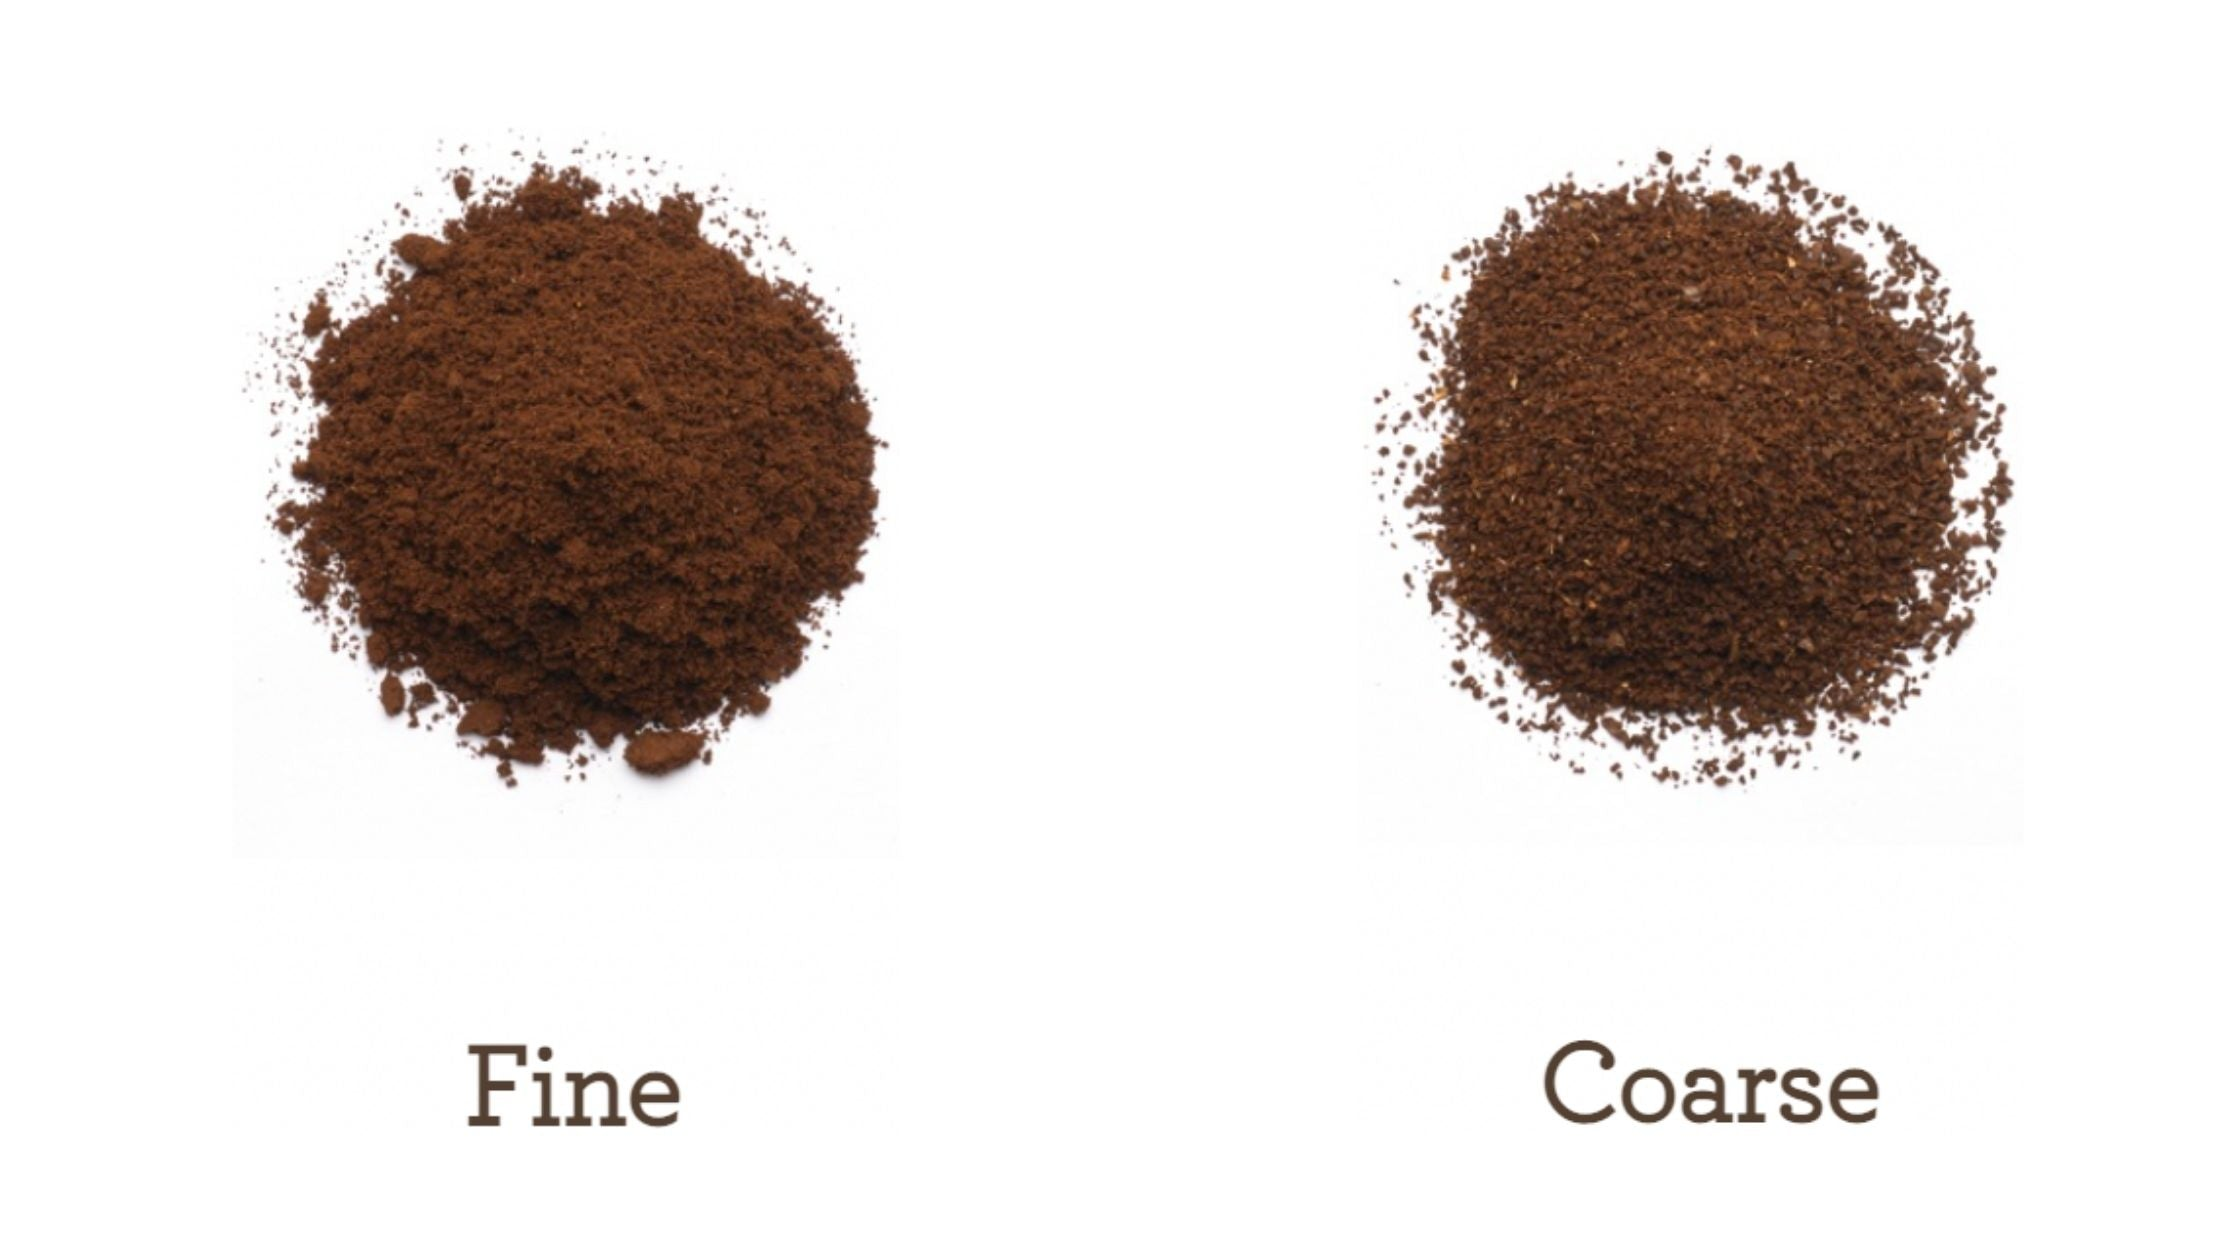 fine grind and coarse grind